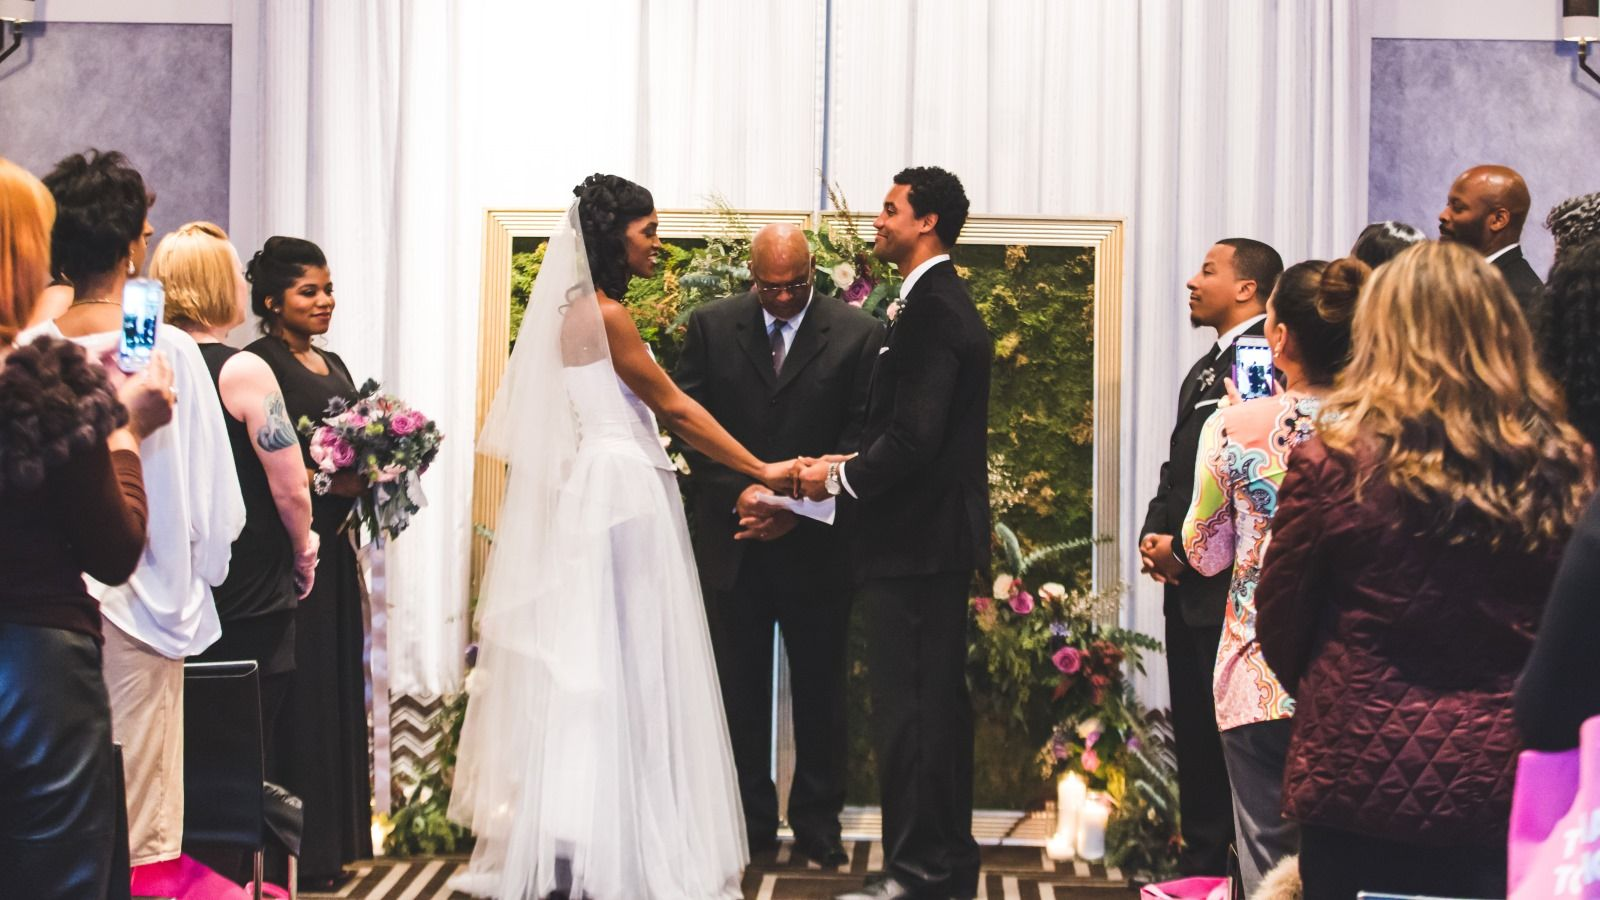 Buckhead Weddings | W Atlanta - Buckhead